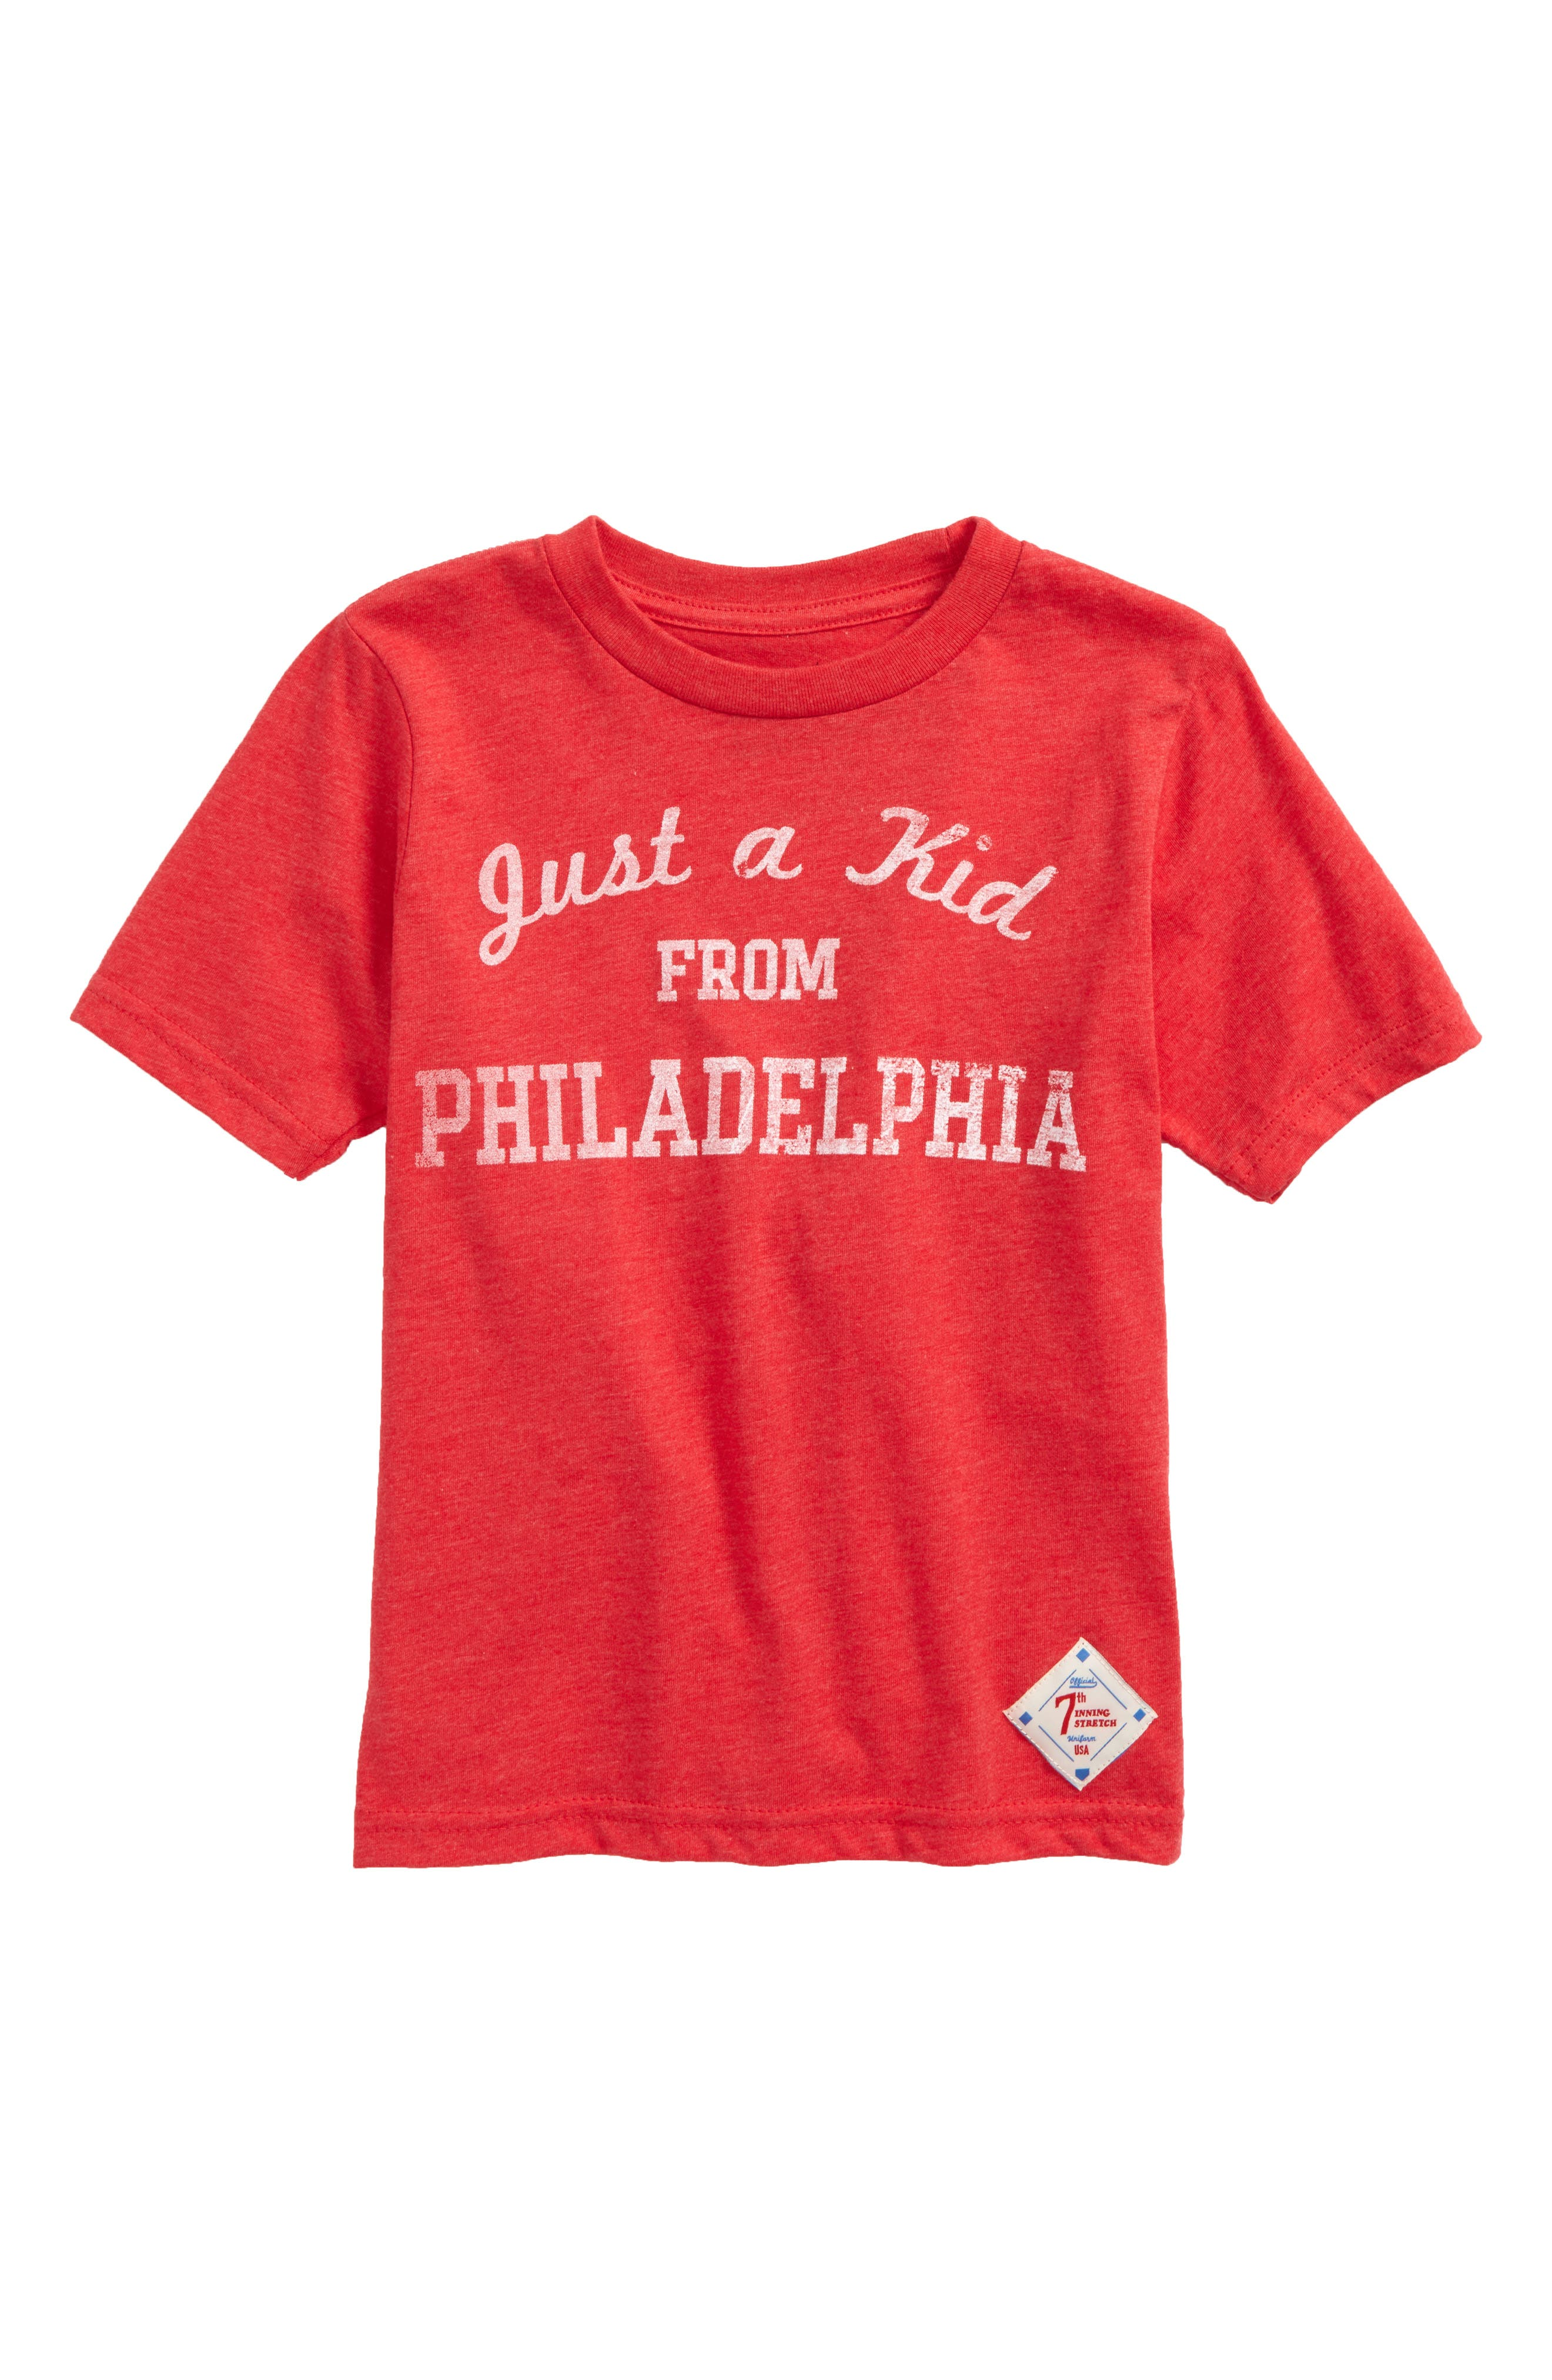 Just a Kid from Philadelphia Graphic T-Shirt,                             Main thumbnail 1, color,                             Red/ White